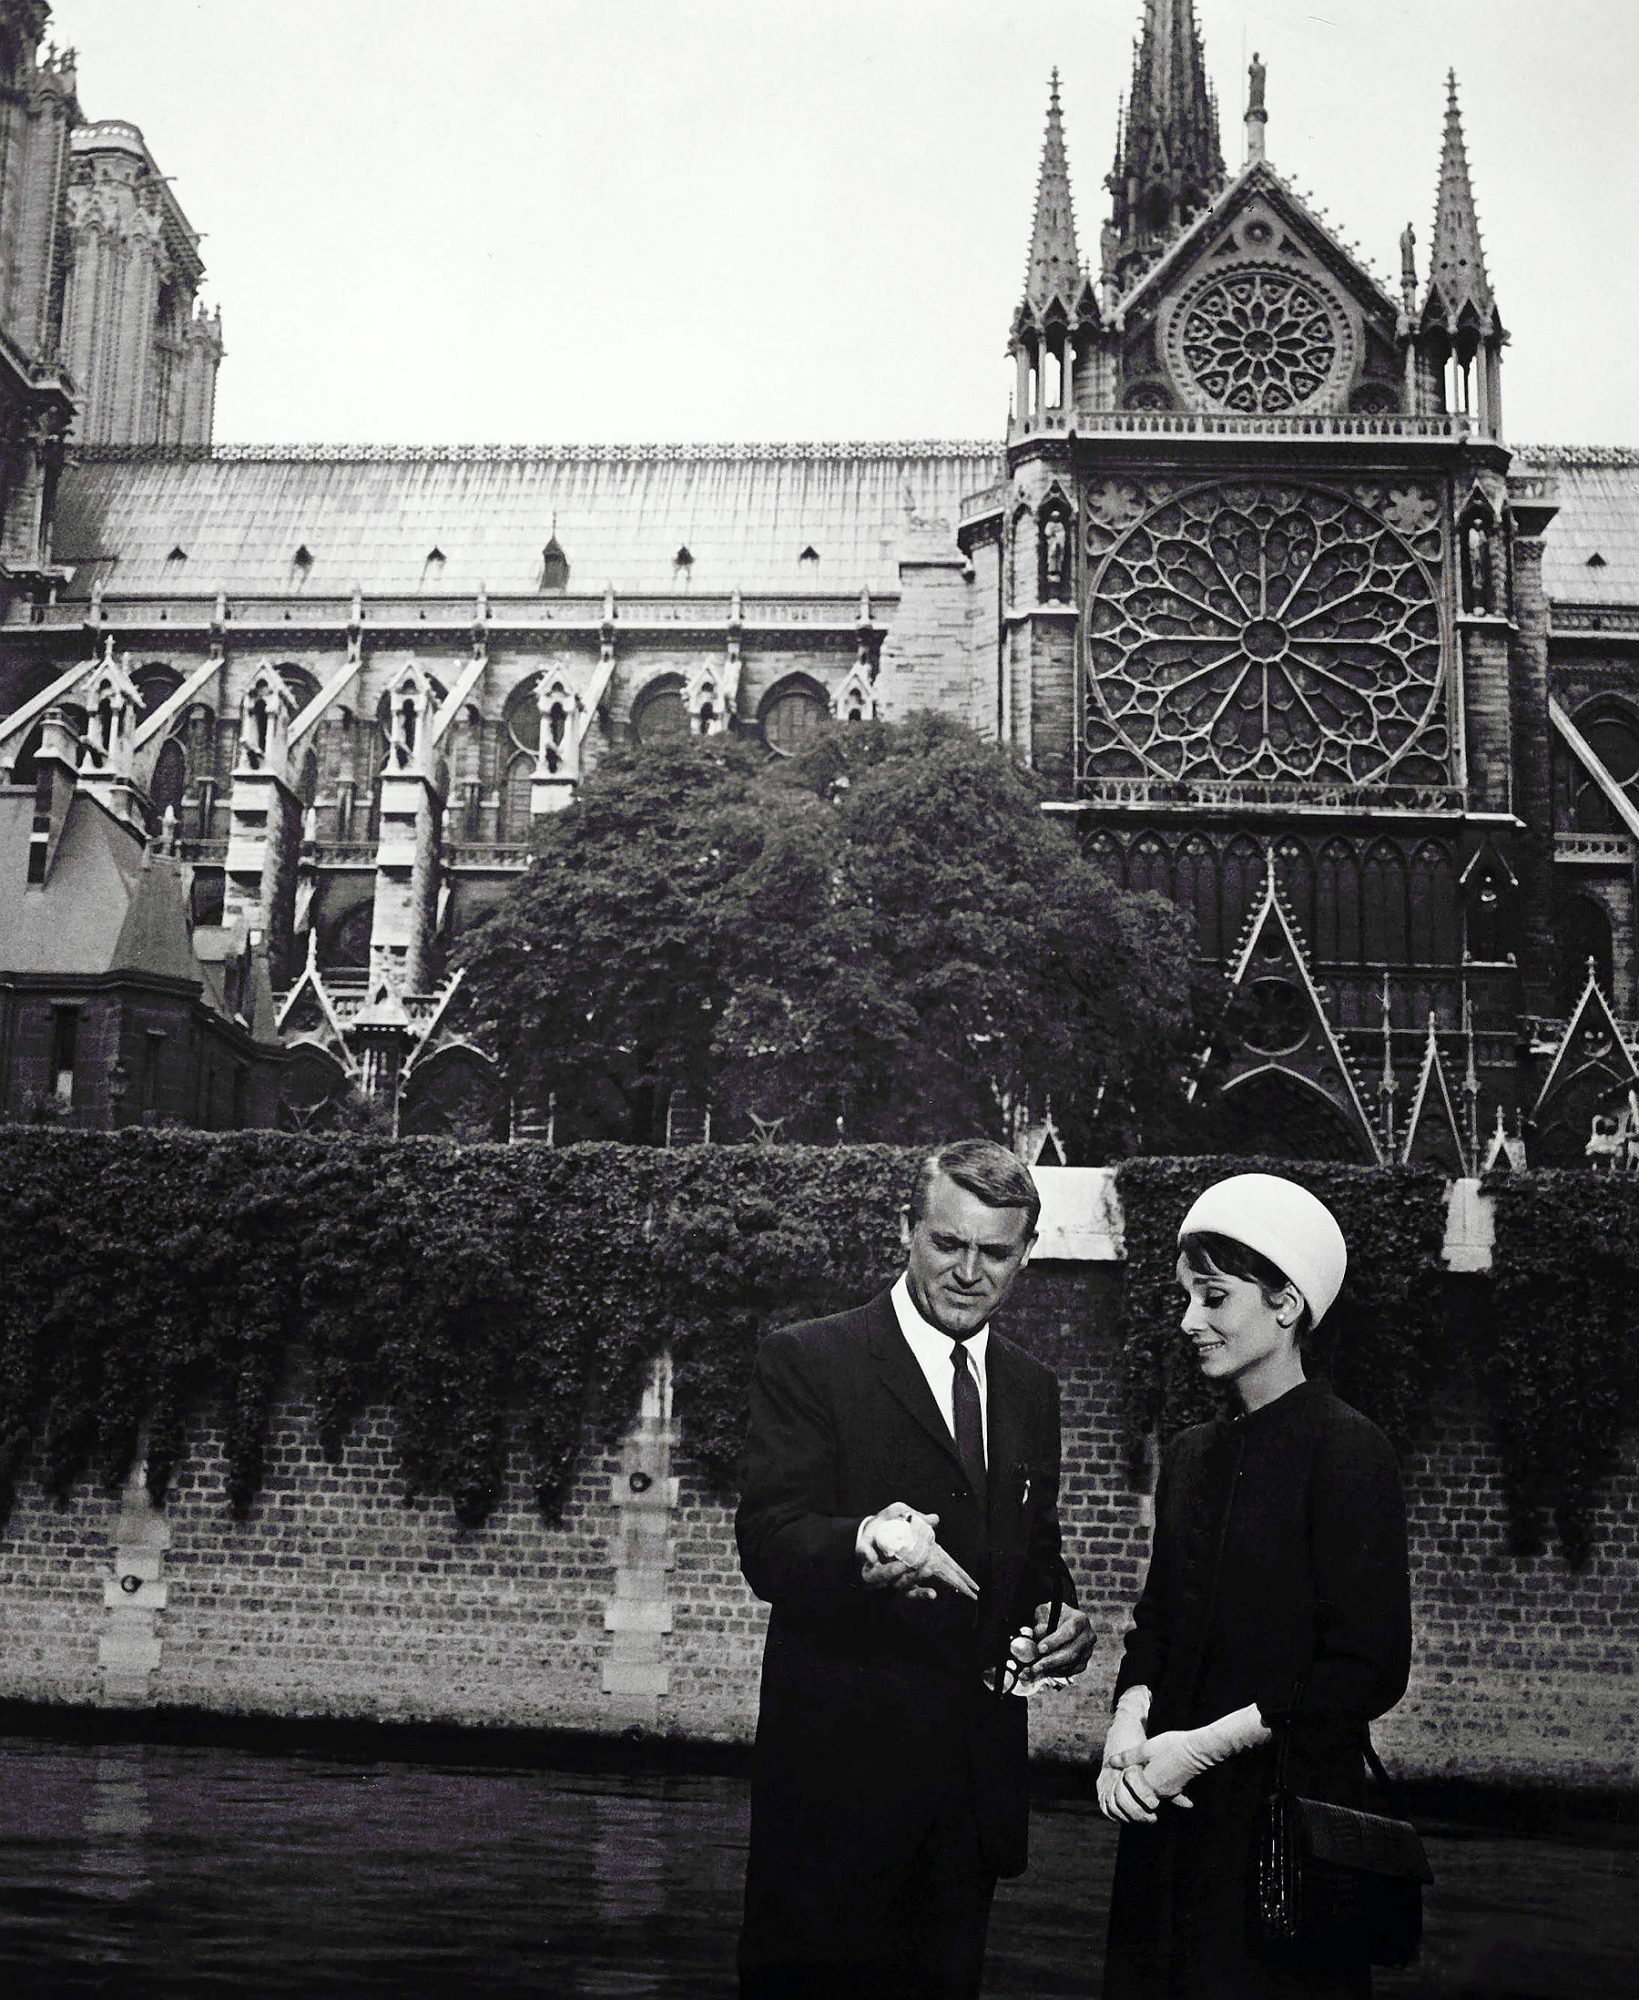 Charade, Cary Grant, Audrey Hepburn, Notre Dame